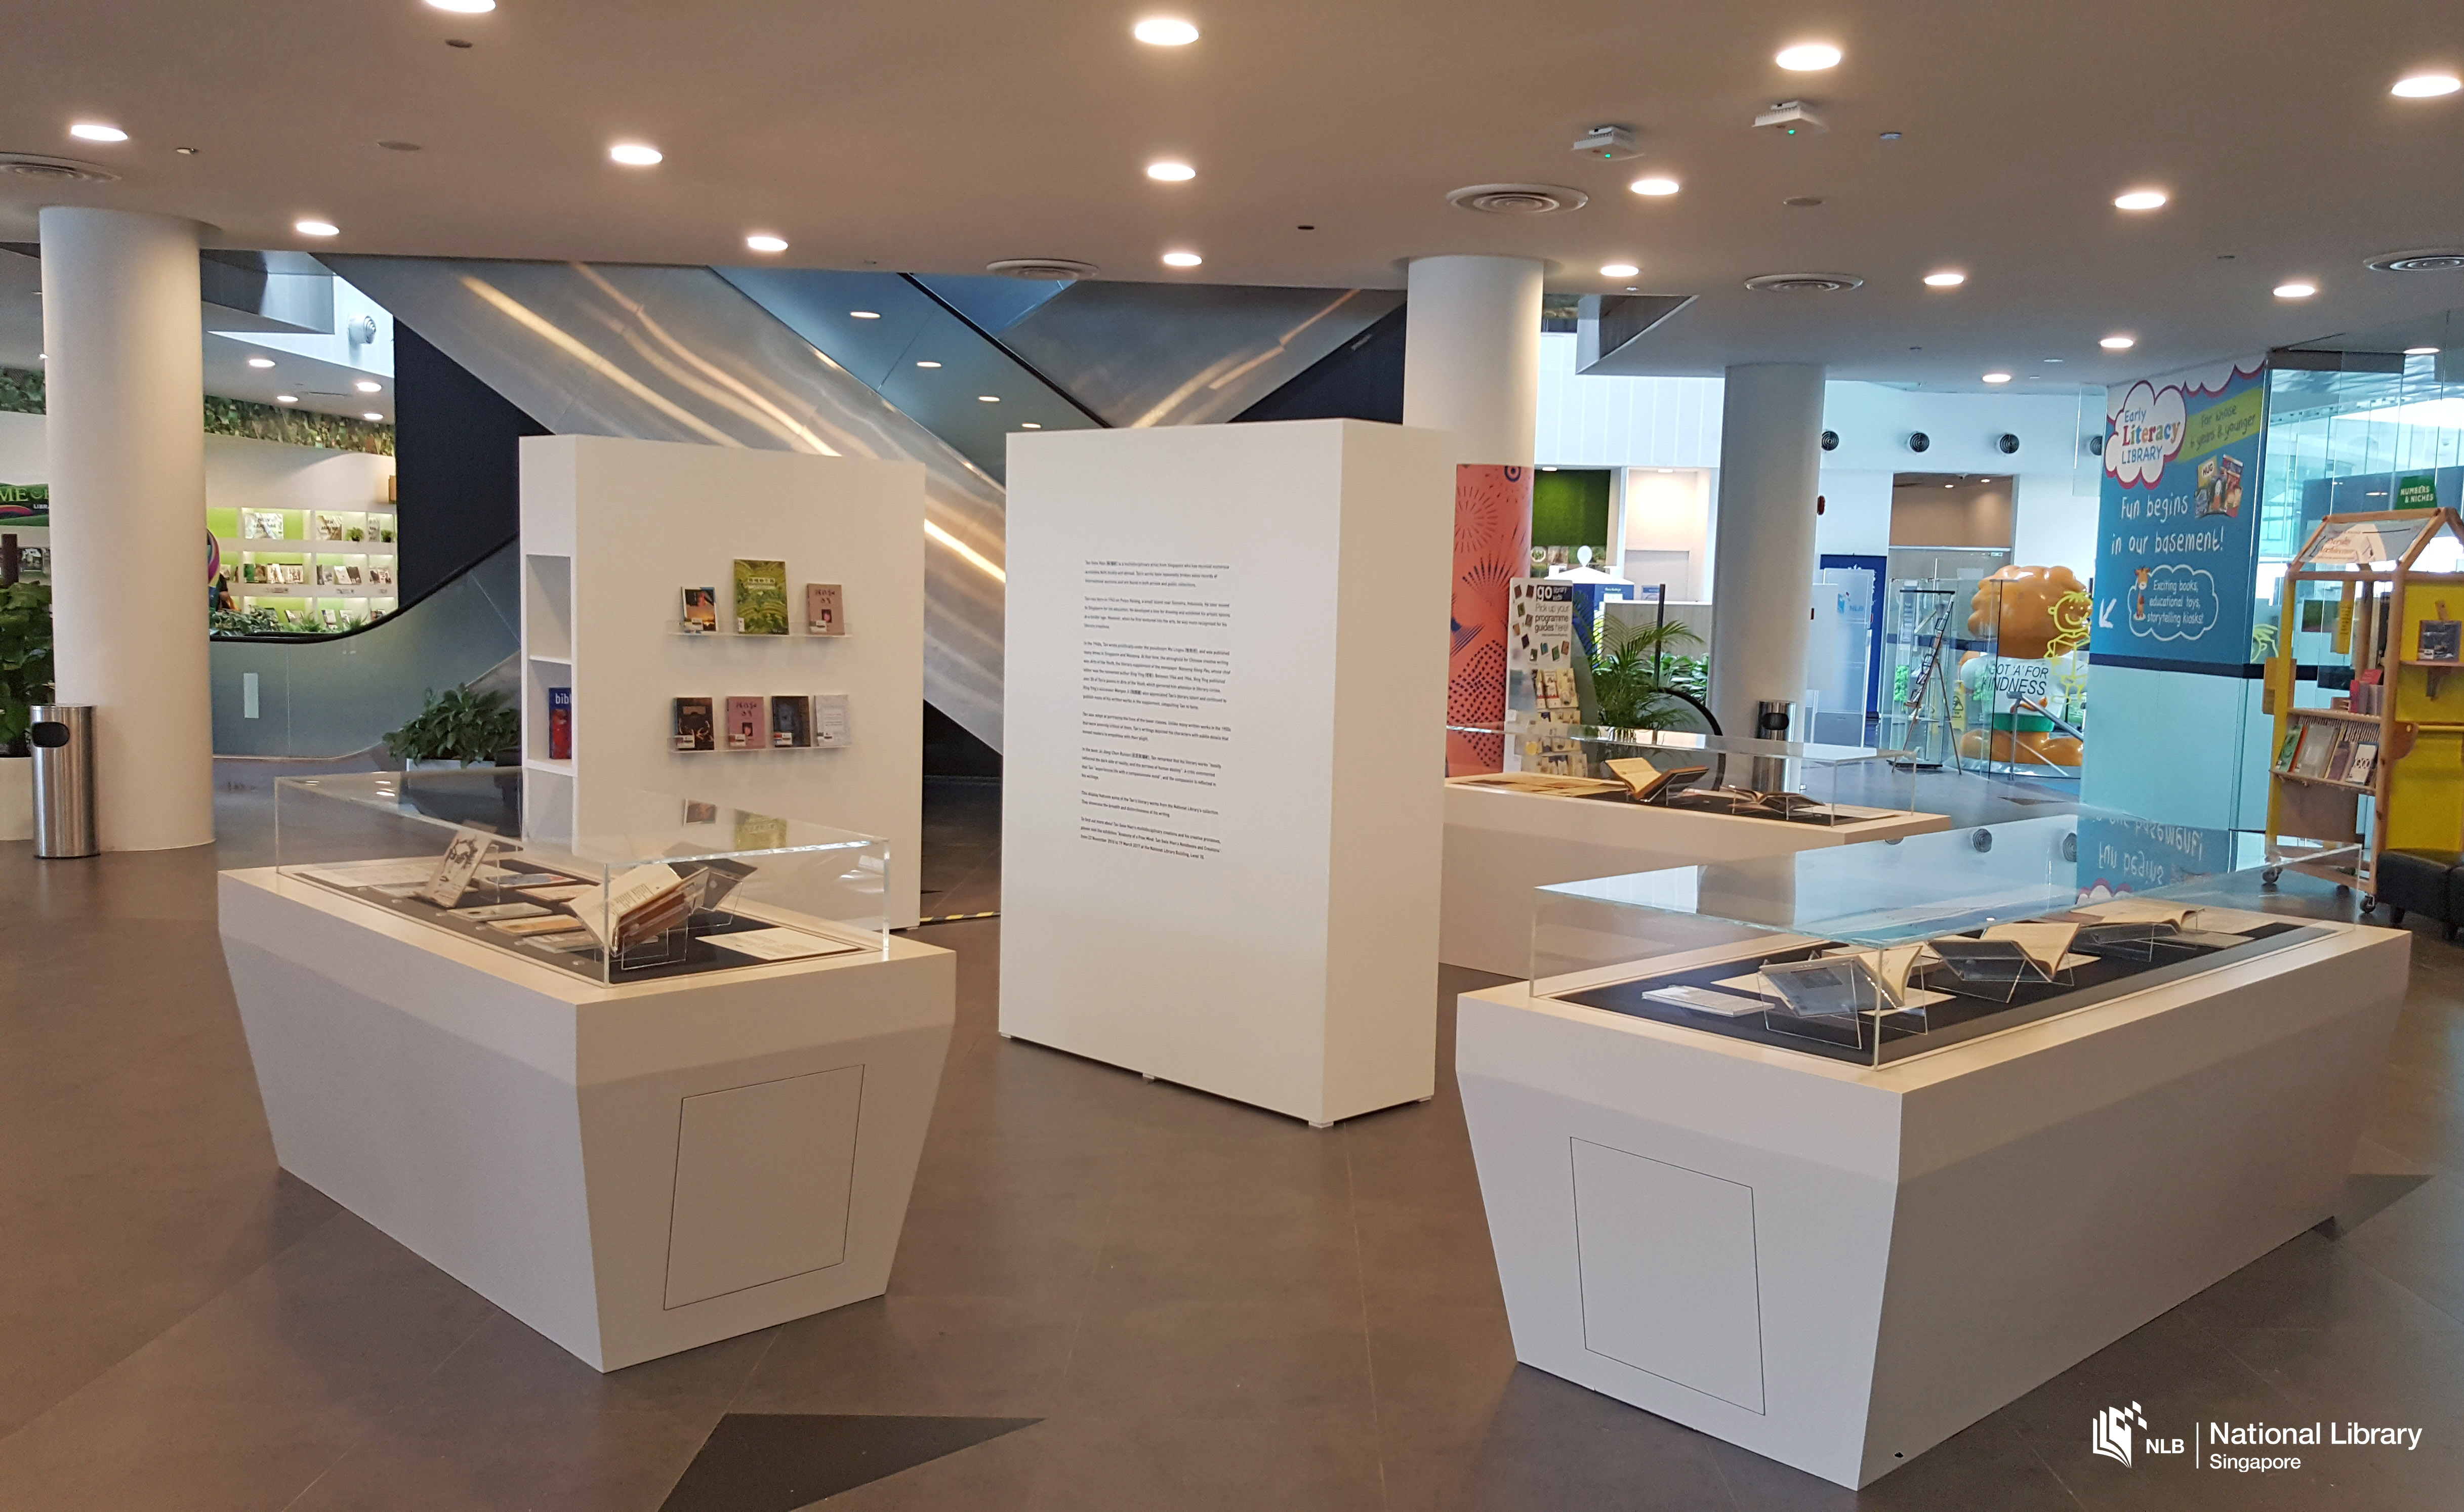 A photo of the roving exhibition. An information wall in the middle is surrounded by showcases and a wall with books.